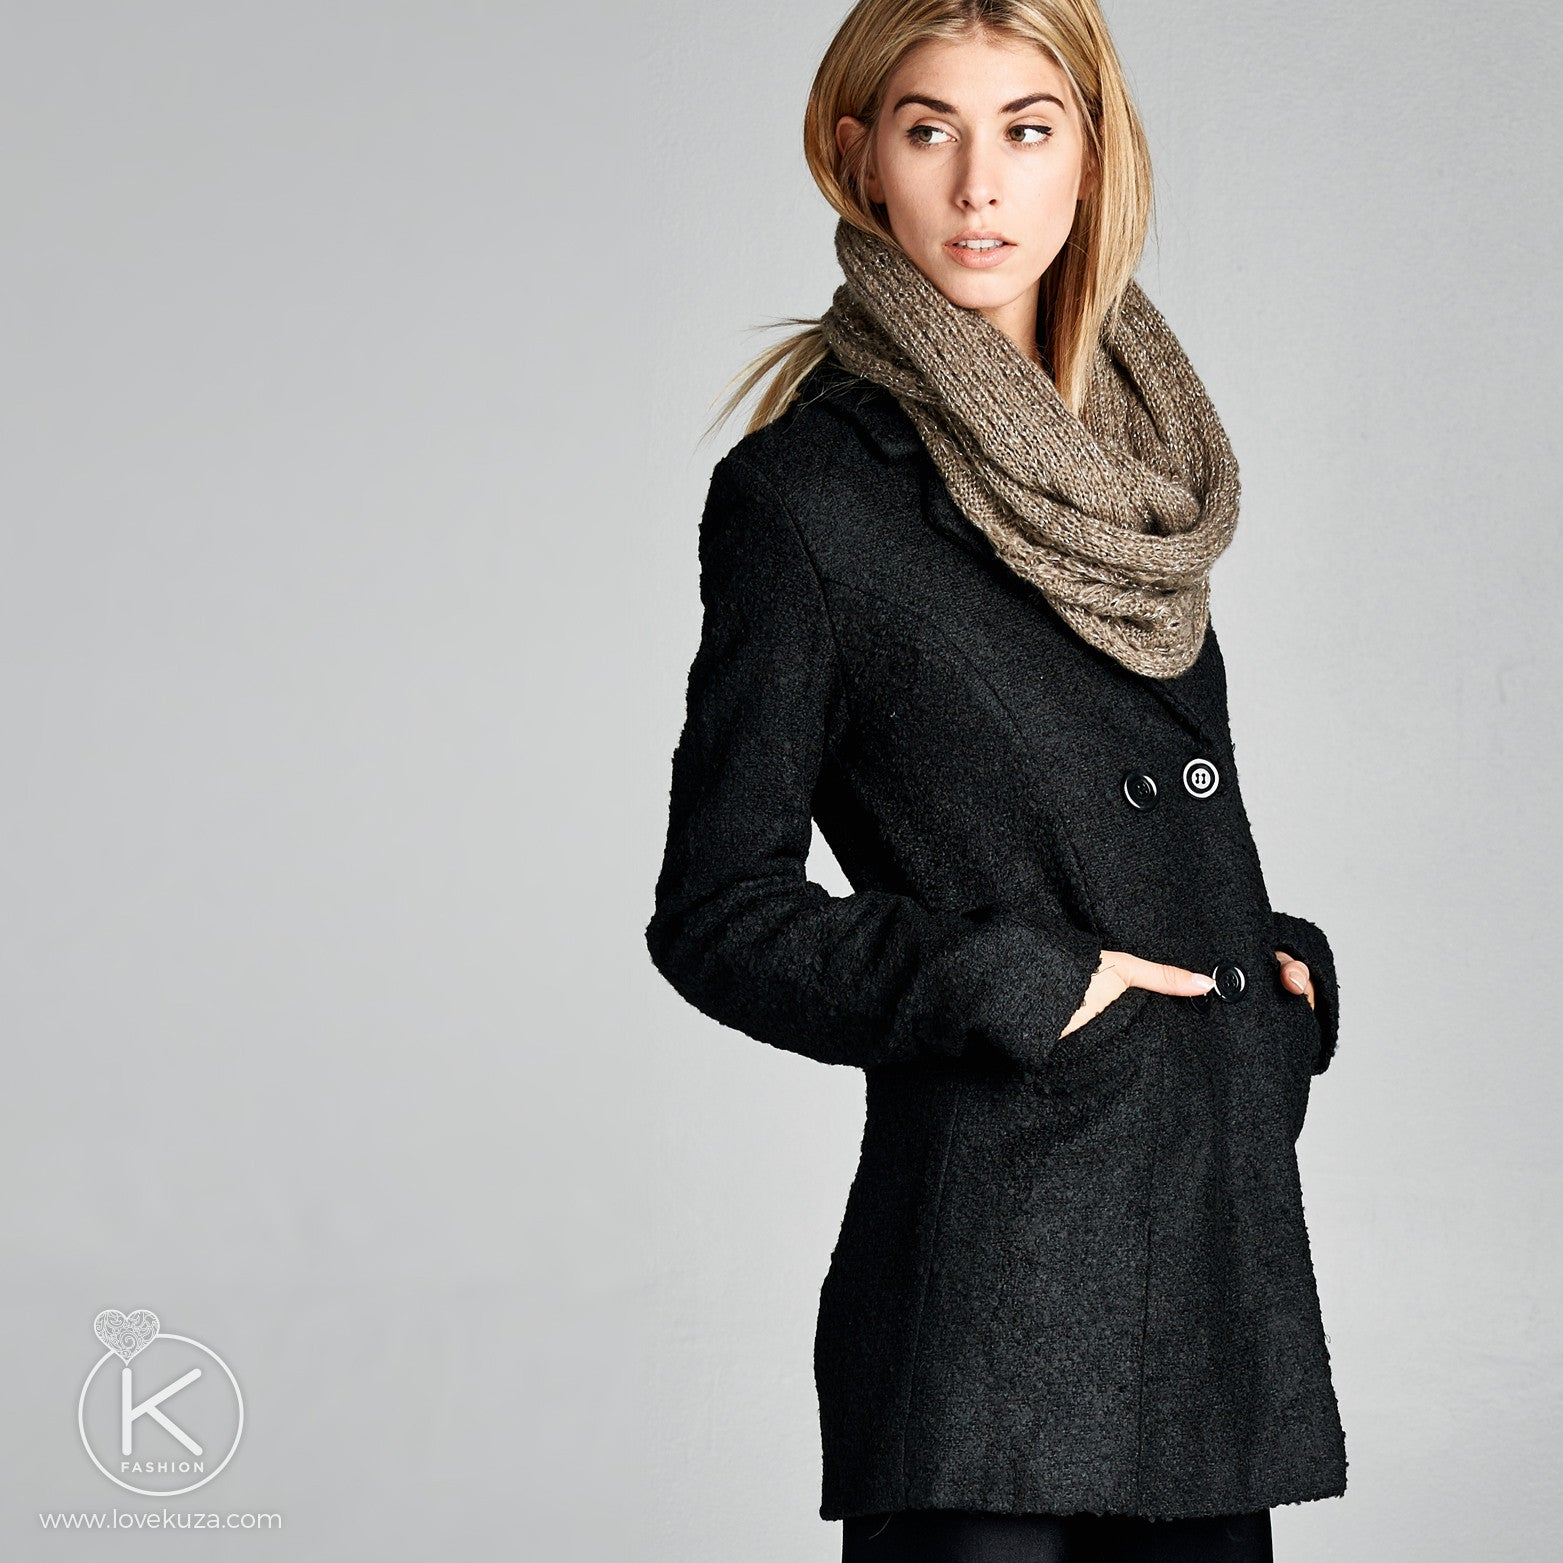 Classic Double-Breasted Peacoat - Love, Kuza